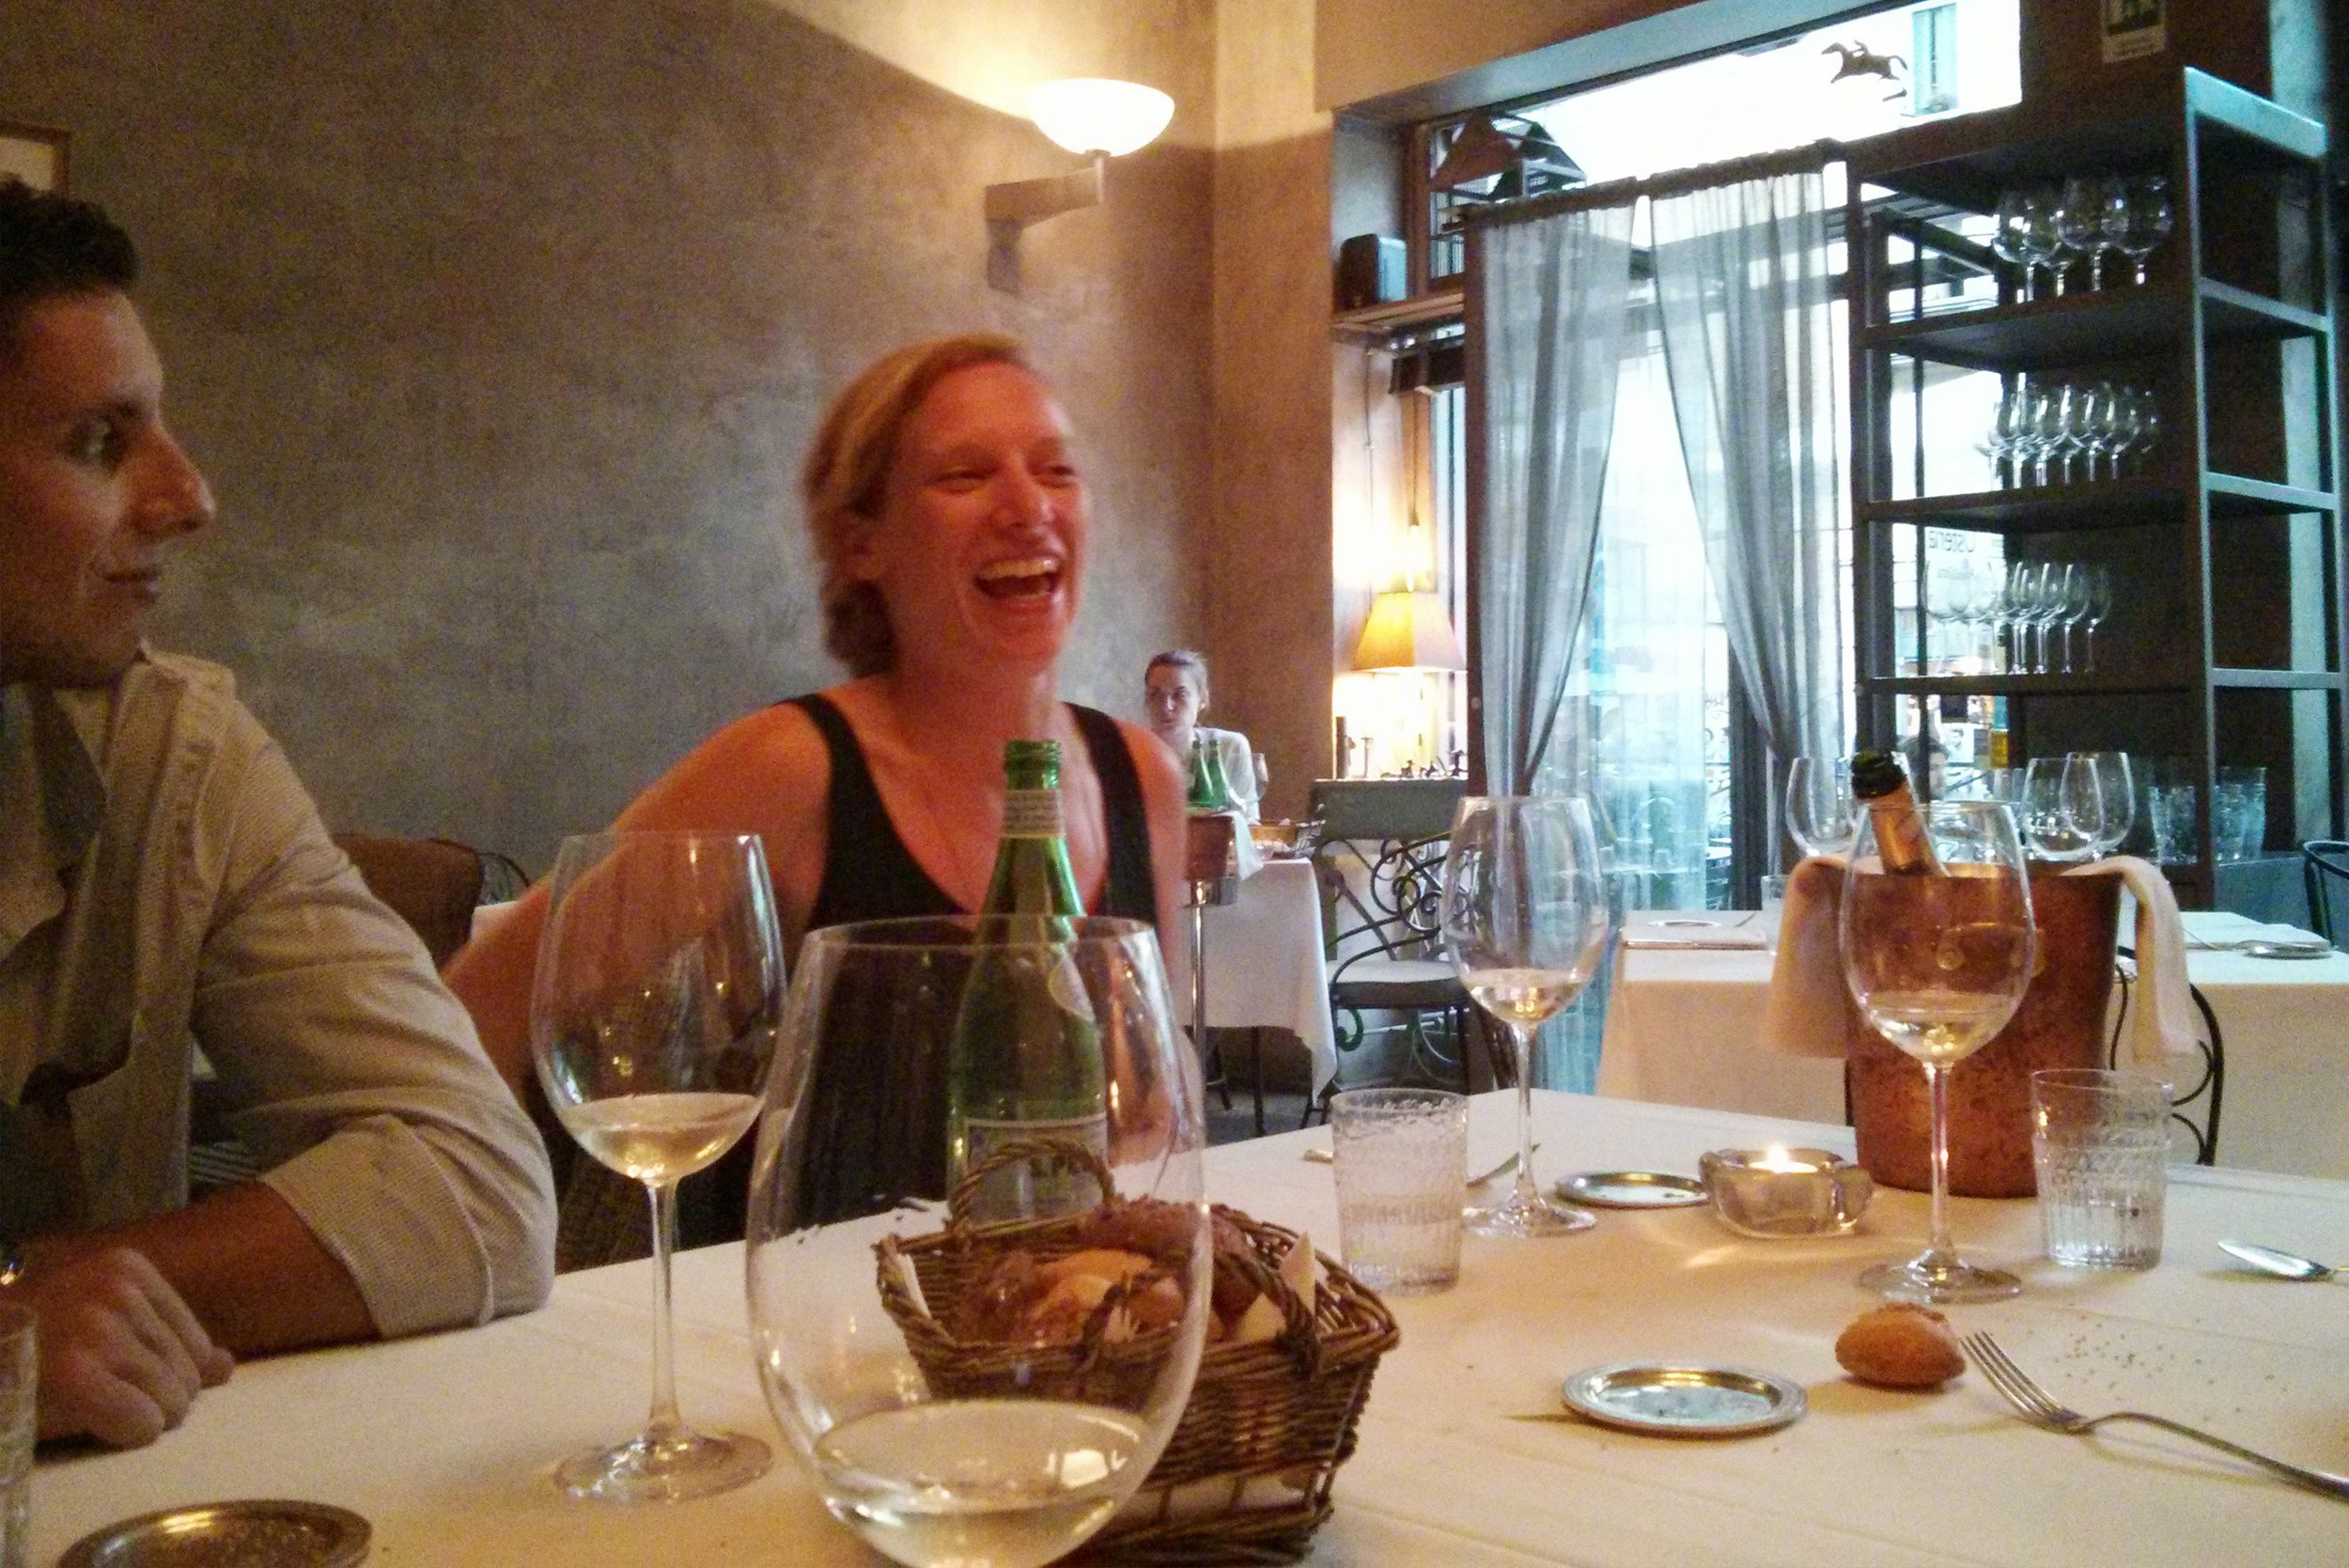 Photo of people enjoying their time at a restaurante during a Sonoma Yoga Privates event.  This photo links to the Sonoma Yoga Privates' event page.